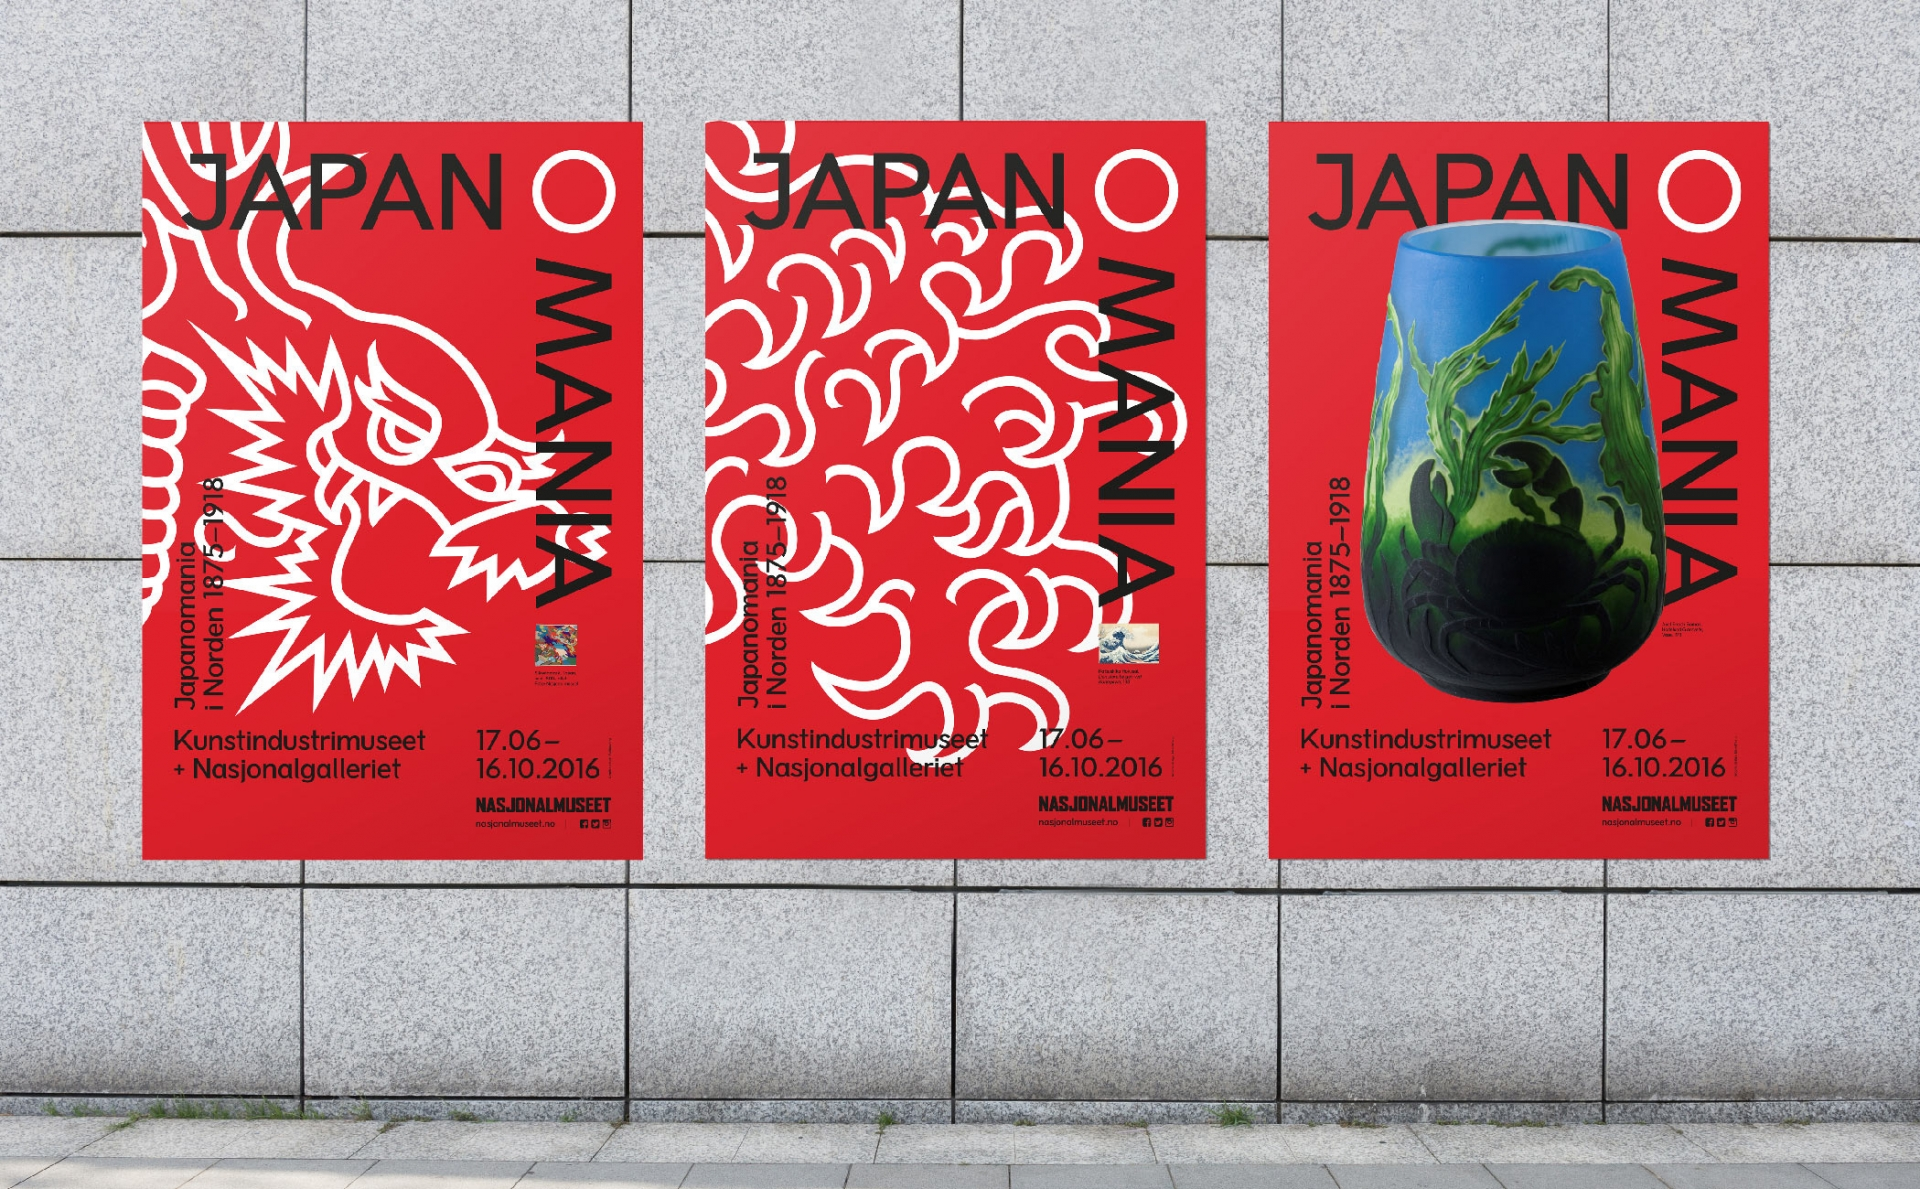 Cover image: Japanomania